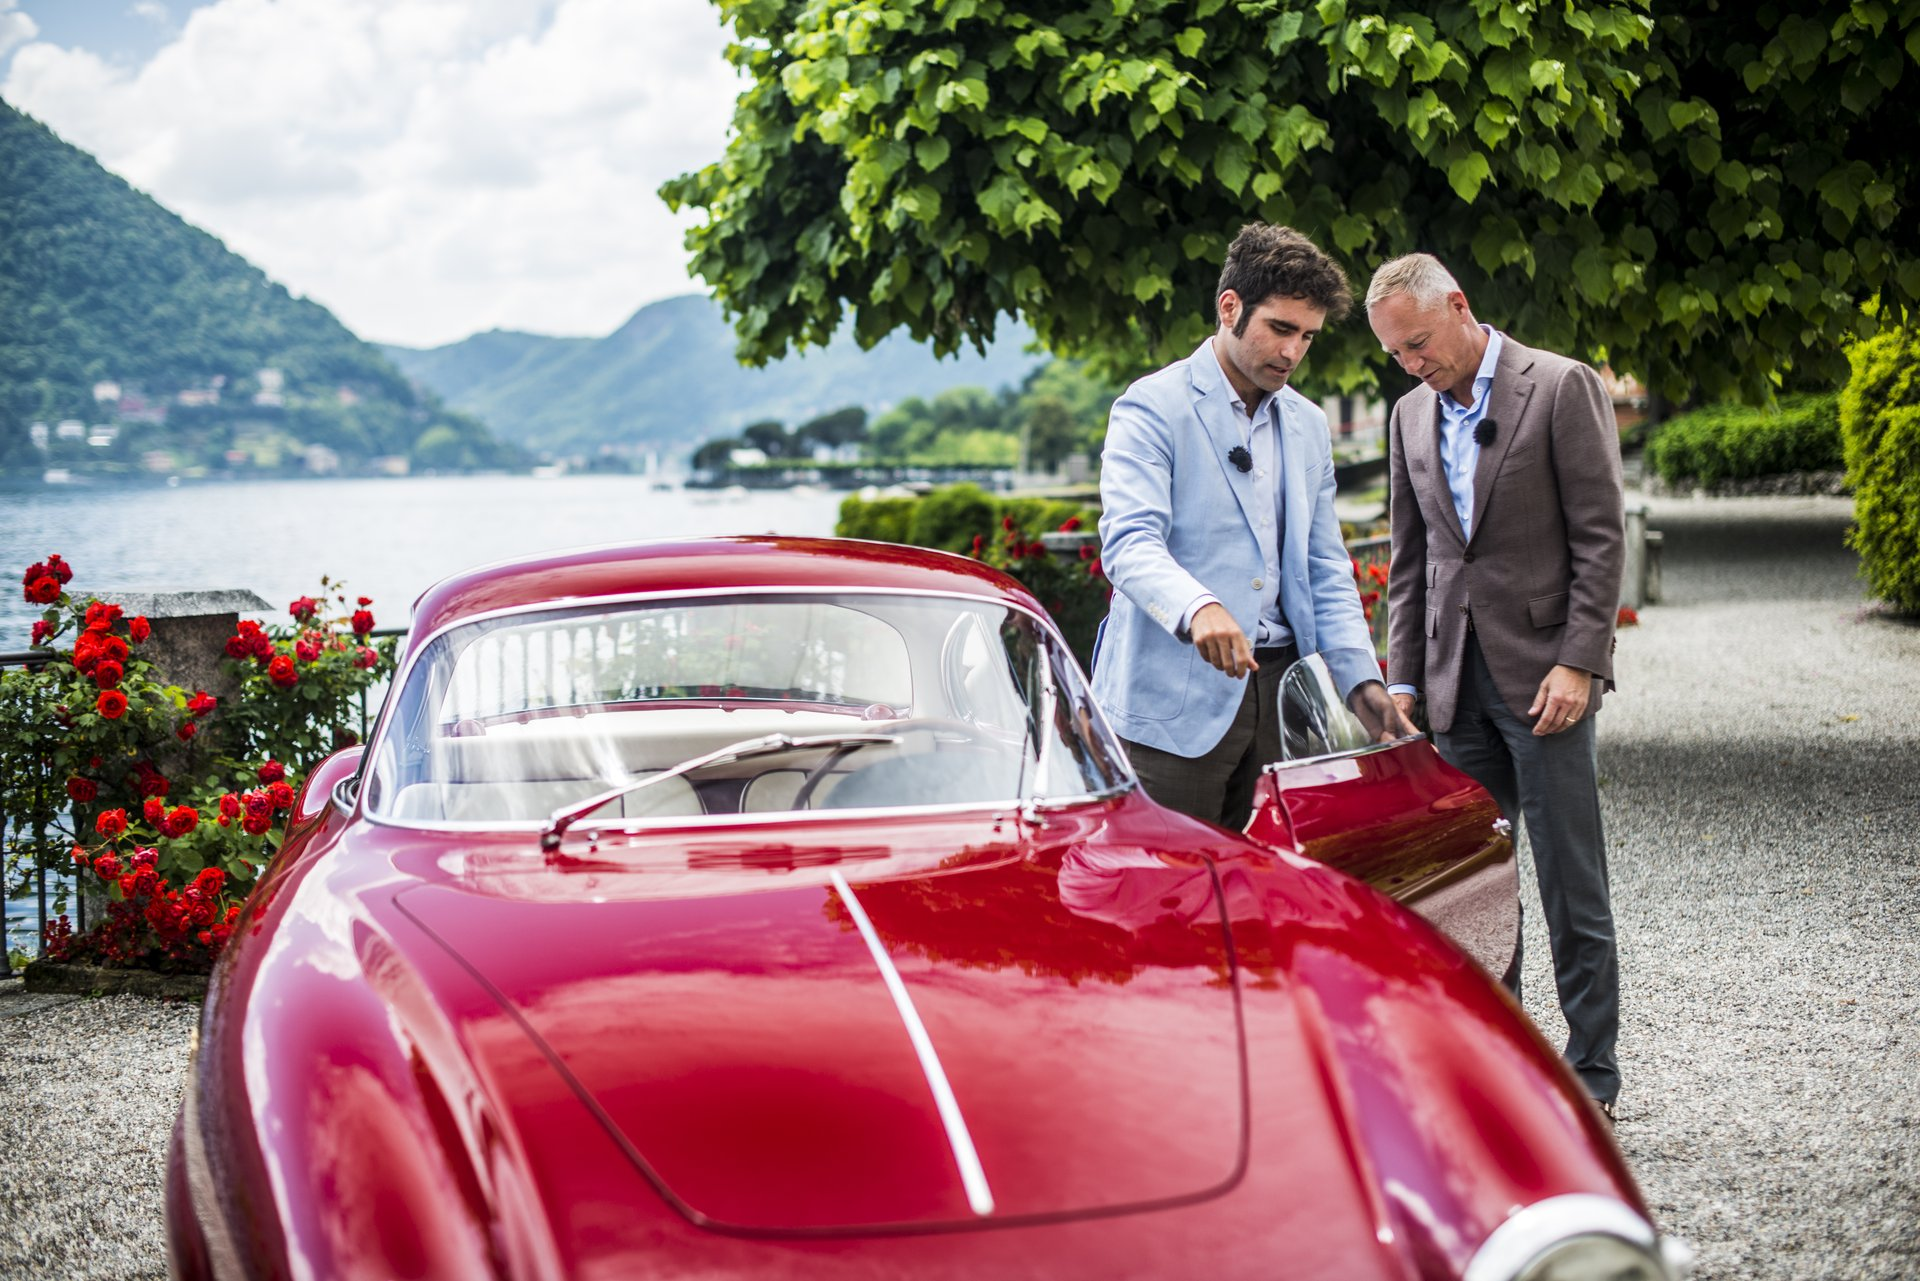 "From 24 to 26 May 2019, A. Lange & Söhne will once again sponsor the Concorso d'Eleganza Villa d'Este, which has taken place at the Grand Hotel Villa d'Este in Como, Italy since 1929. For the eighth time, a one-off LANGE 1 TIME ZONE will be awarded to the winner of the ""Best of Show"" competition."